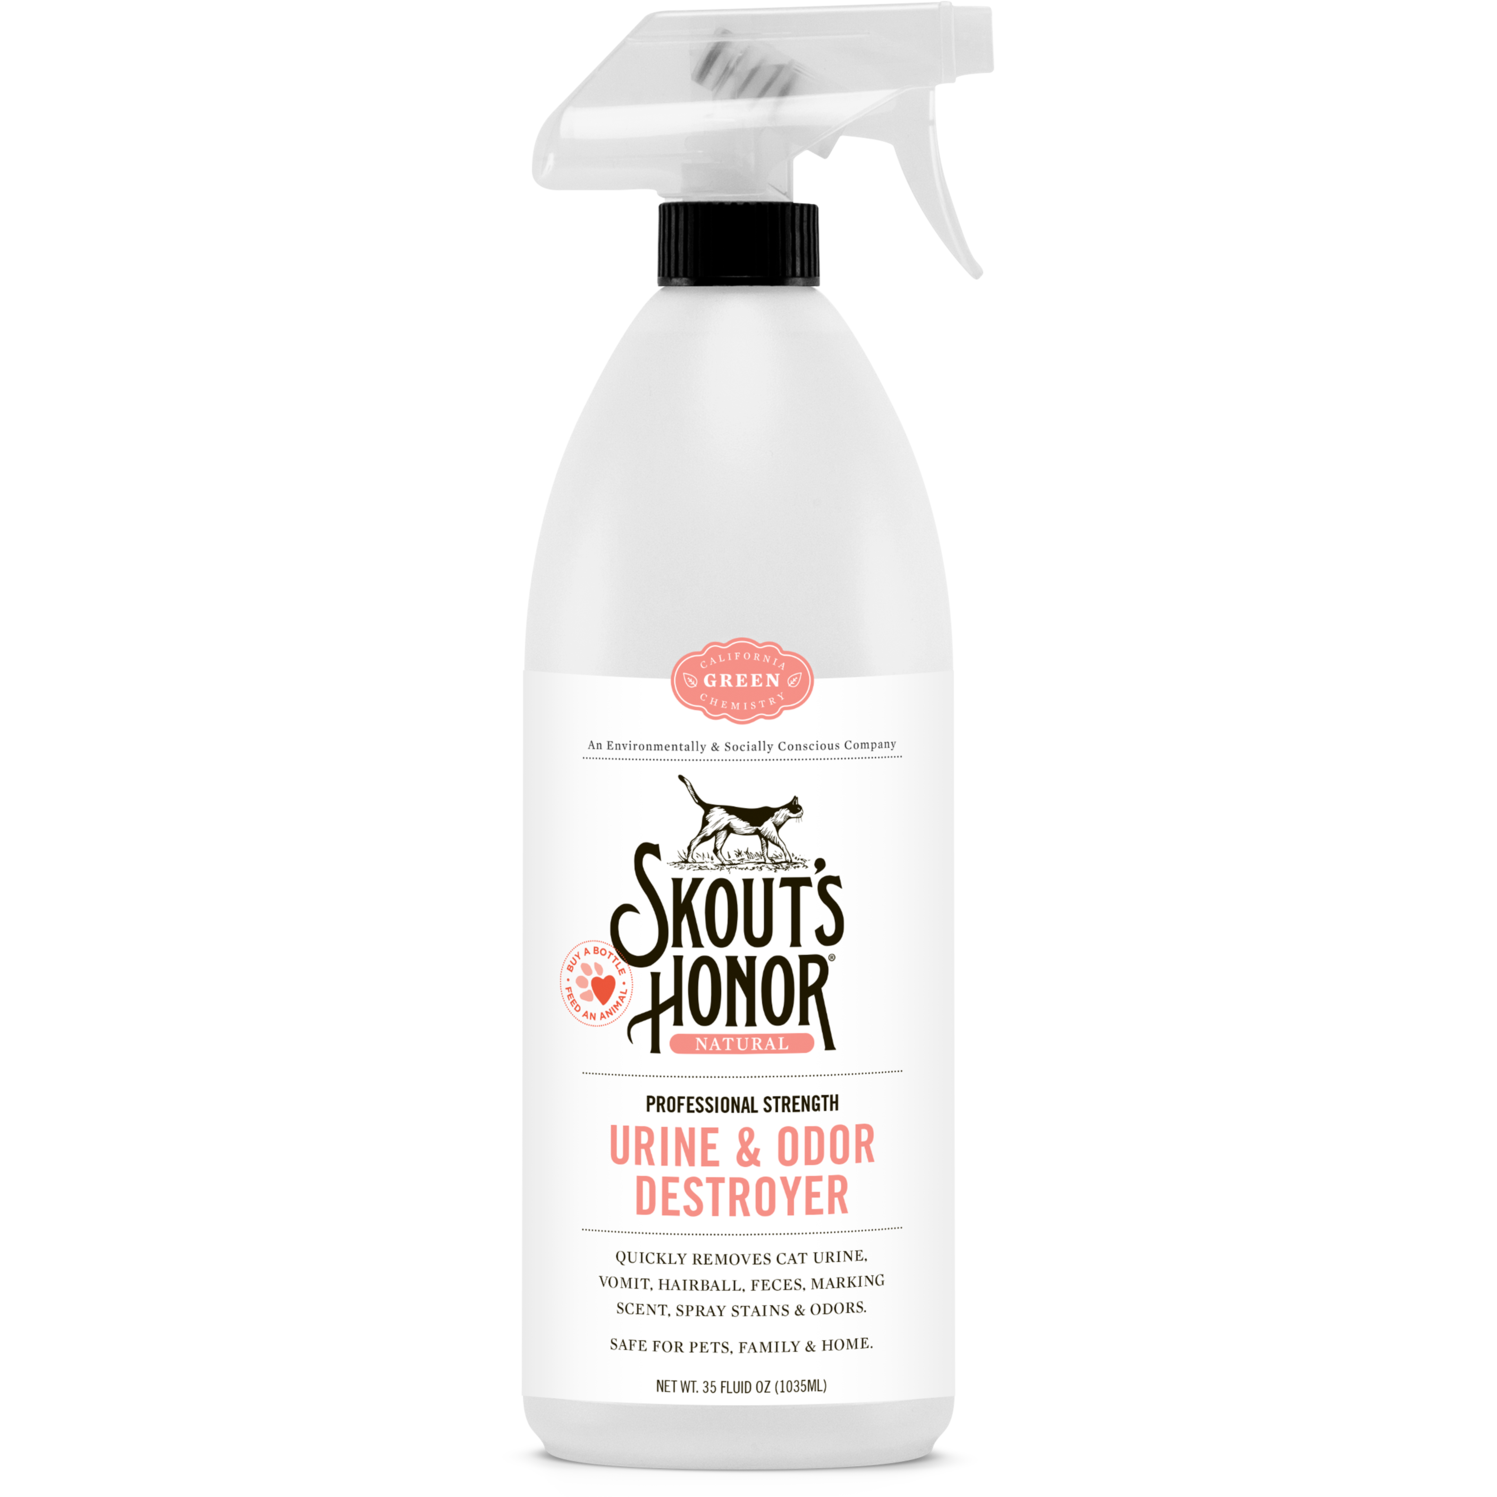 Skout's Honor Urine & Odor Destroyer